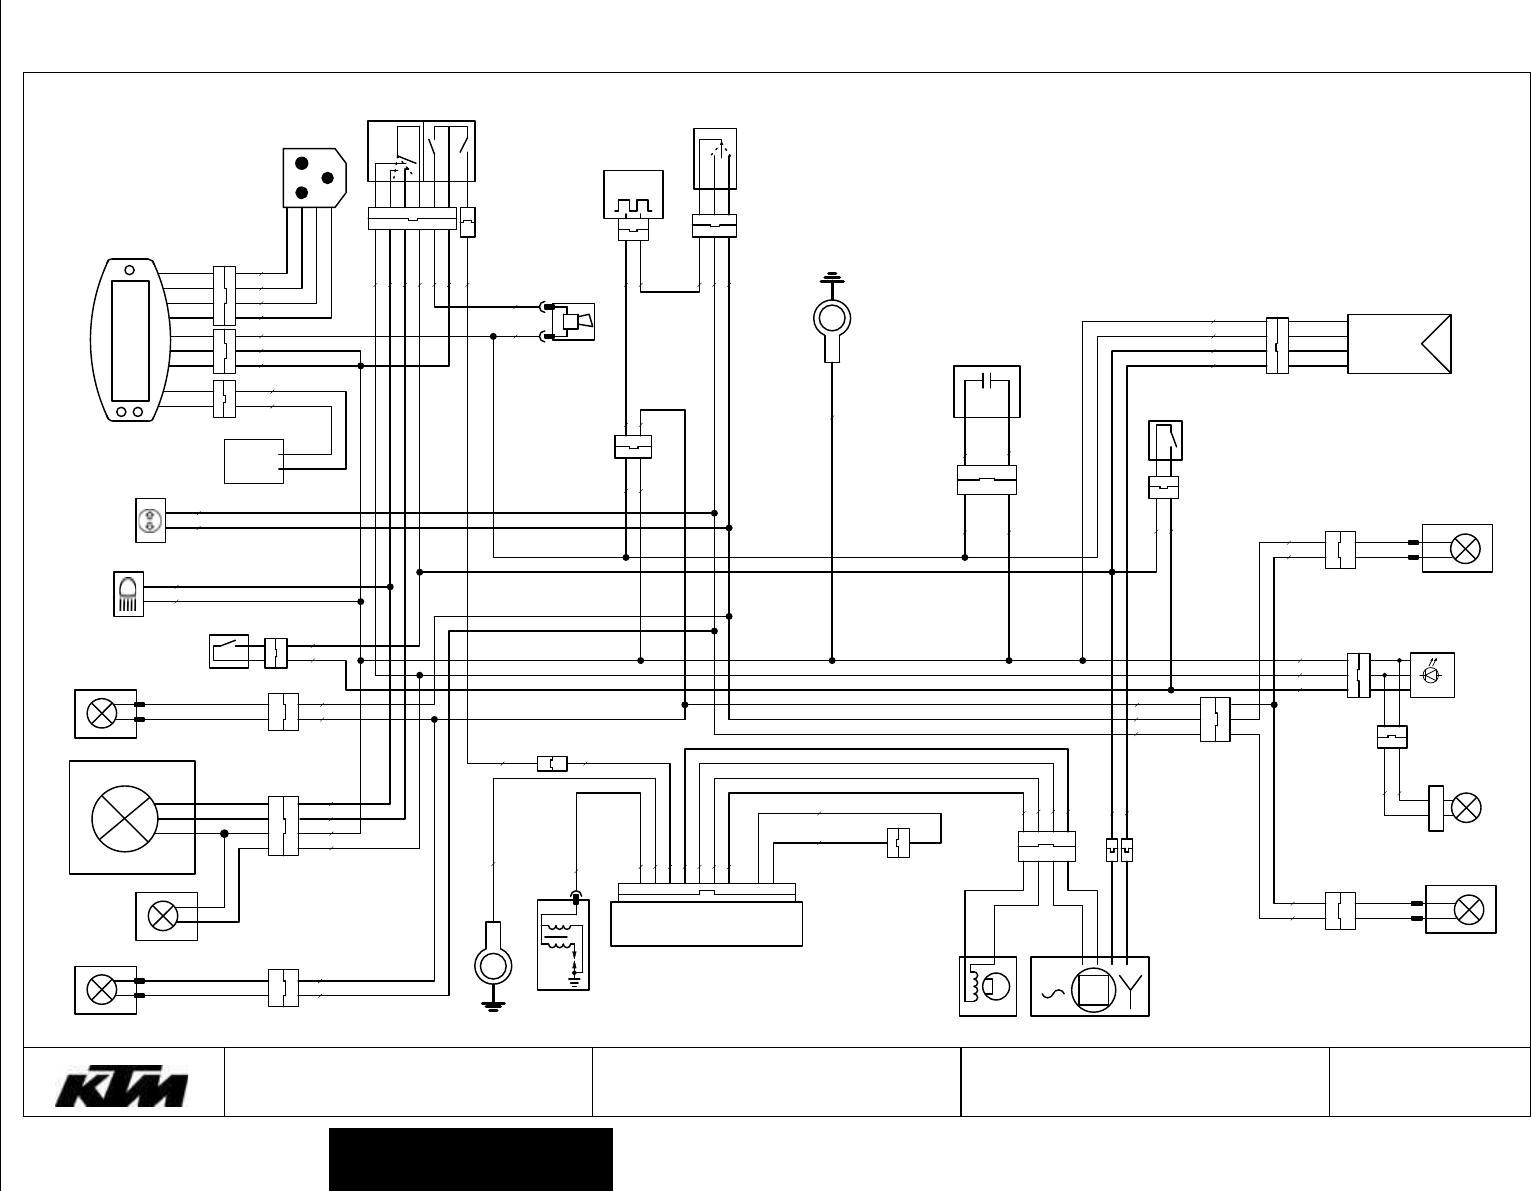 [DIAGRAM] Wiring Diagram Ktm 125 Exc Six Days 200 FULL